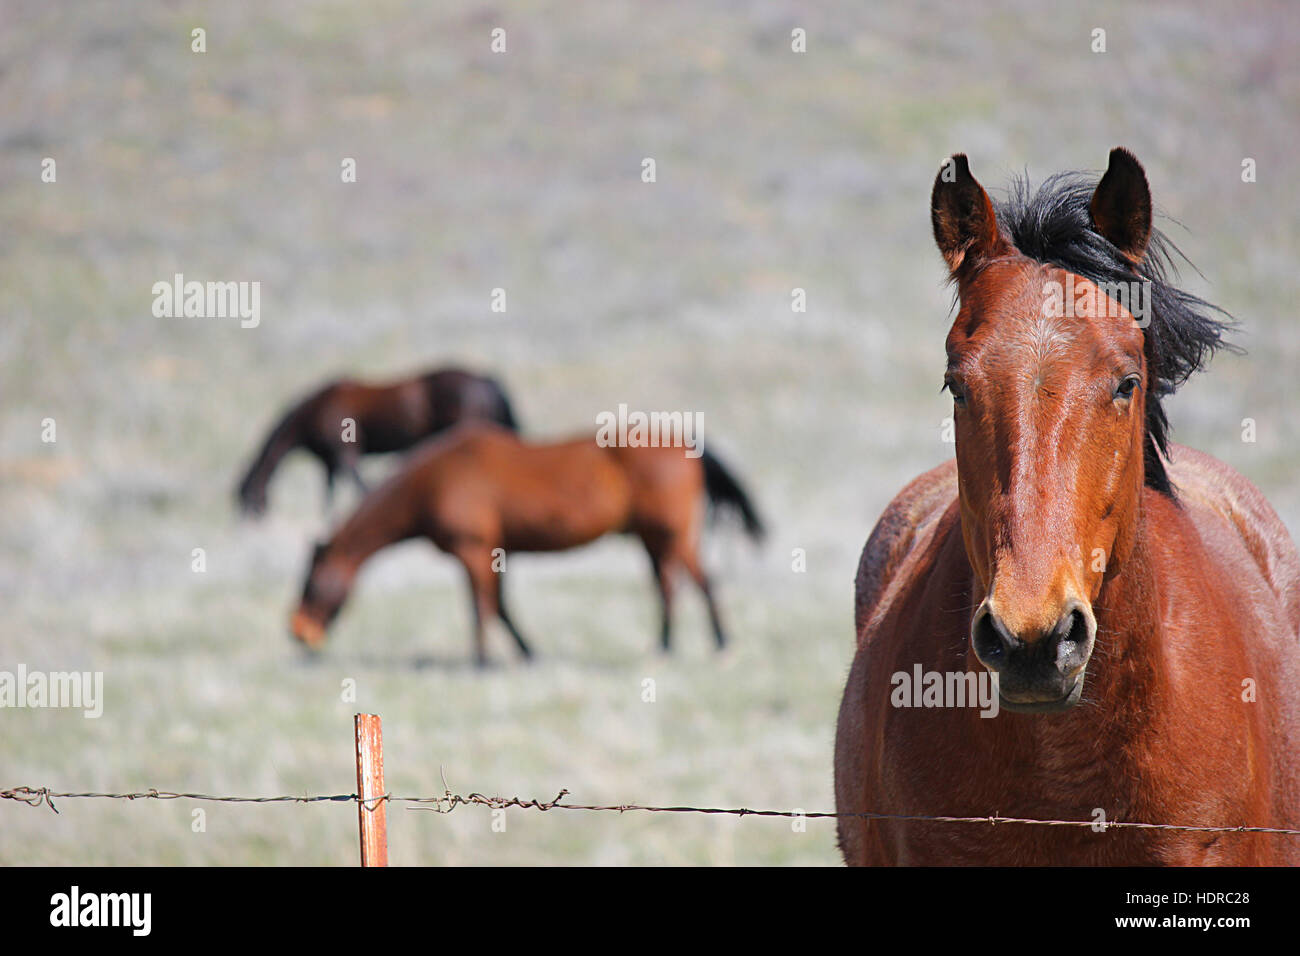 Photogenic horse looking at the camera with horses in the background - Stock Image